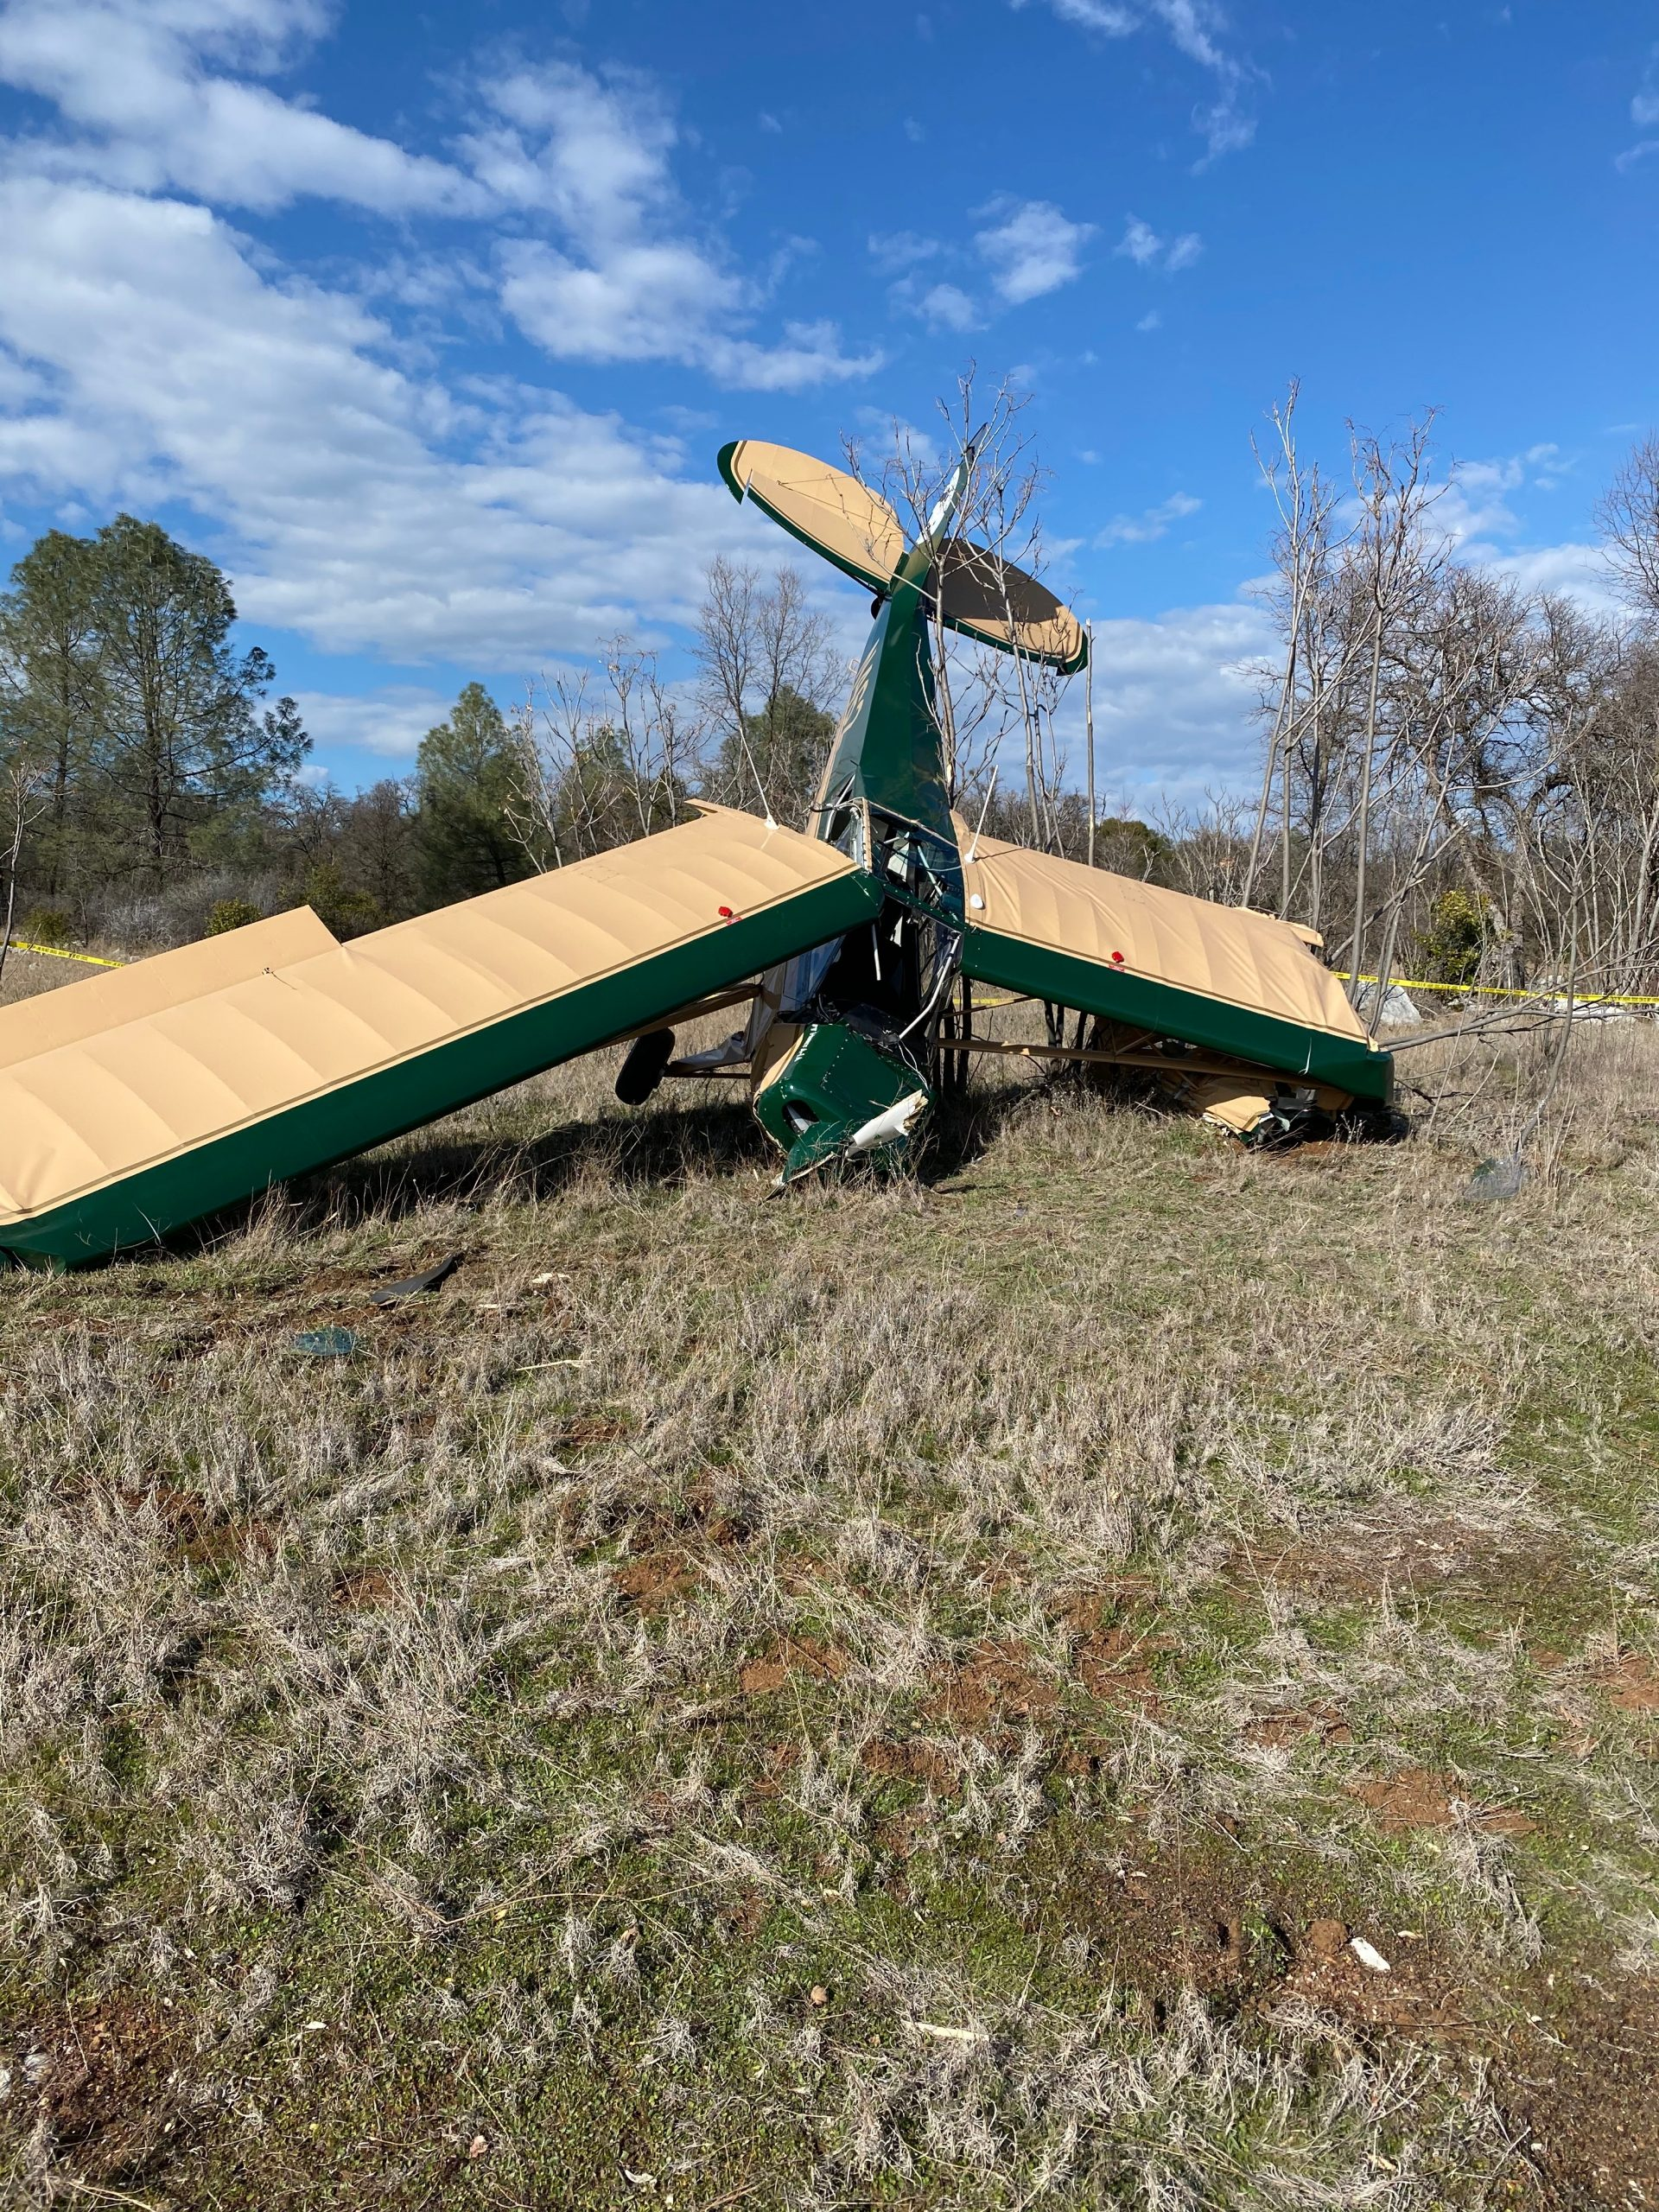 Update: Second Plane Crash At Columbia Airport This Month | myMotherLode.com